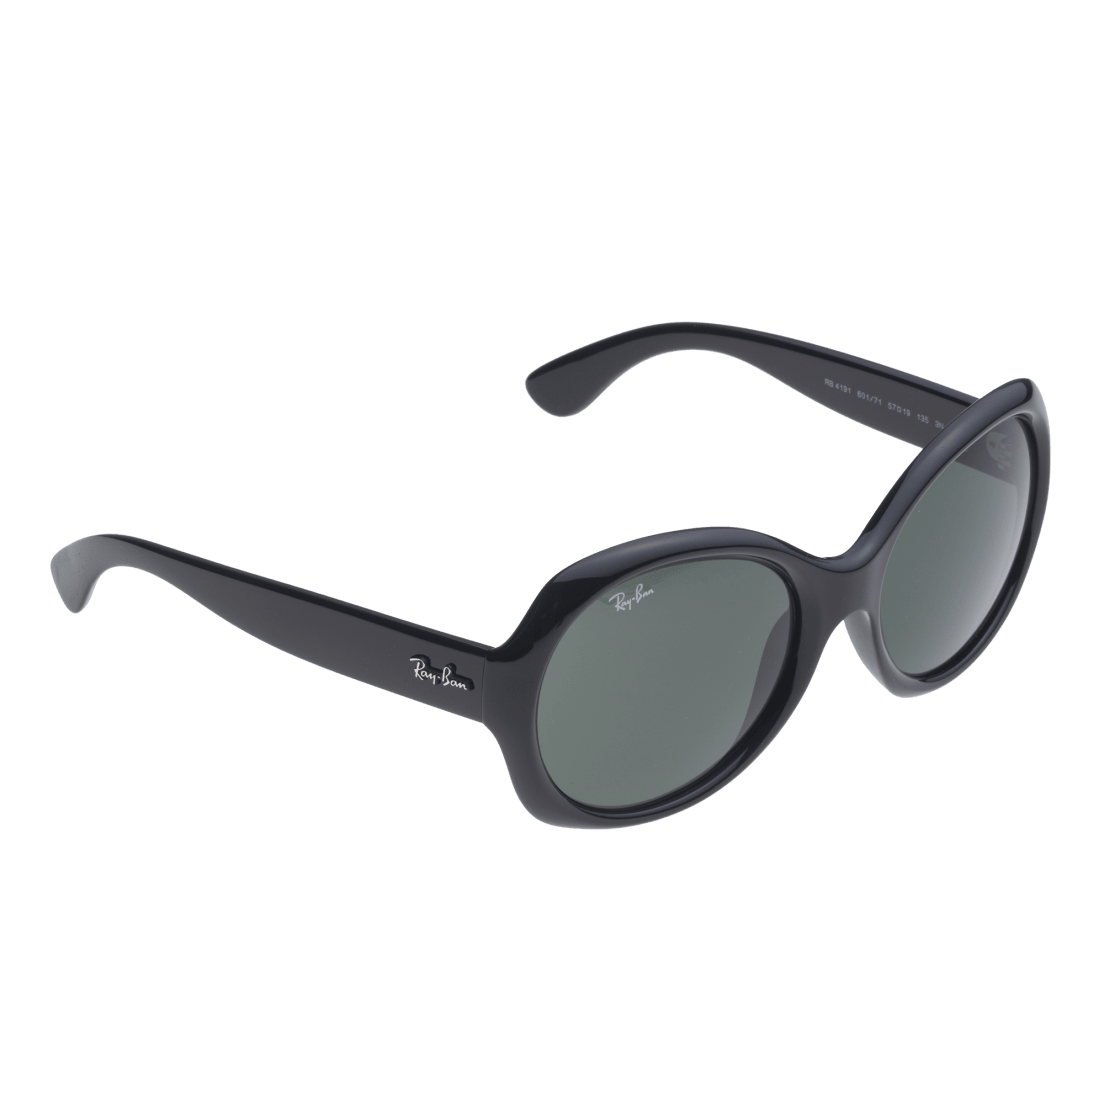 67ced2a2487c69 ... Ray-Ban RB4191 Sunglasses with Black Frame   Green Classic Lenses. Buy  It  69  143 save 52%